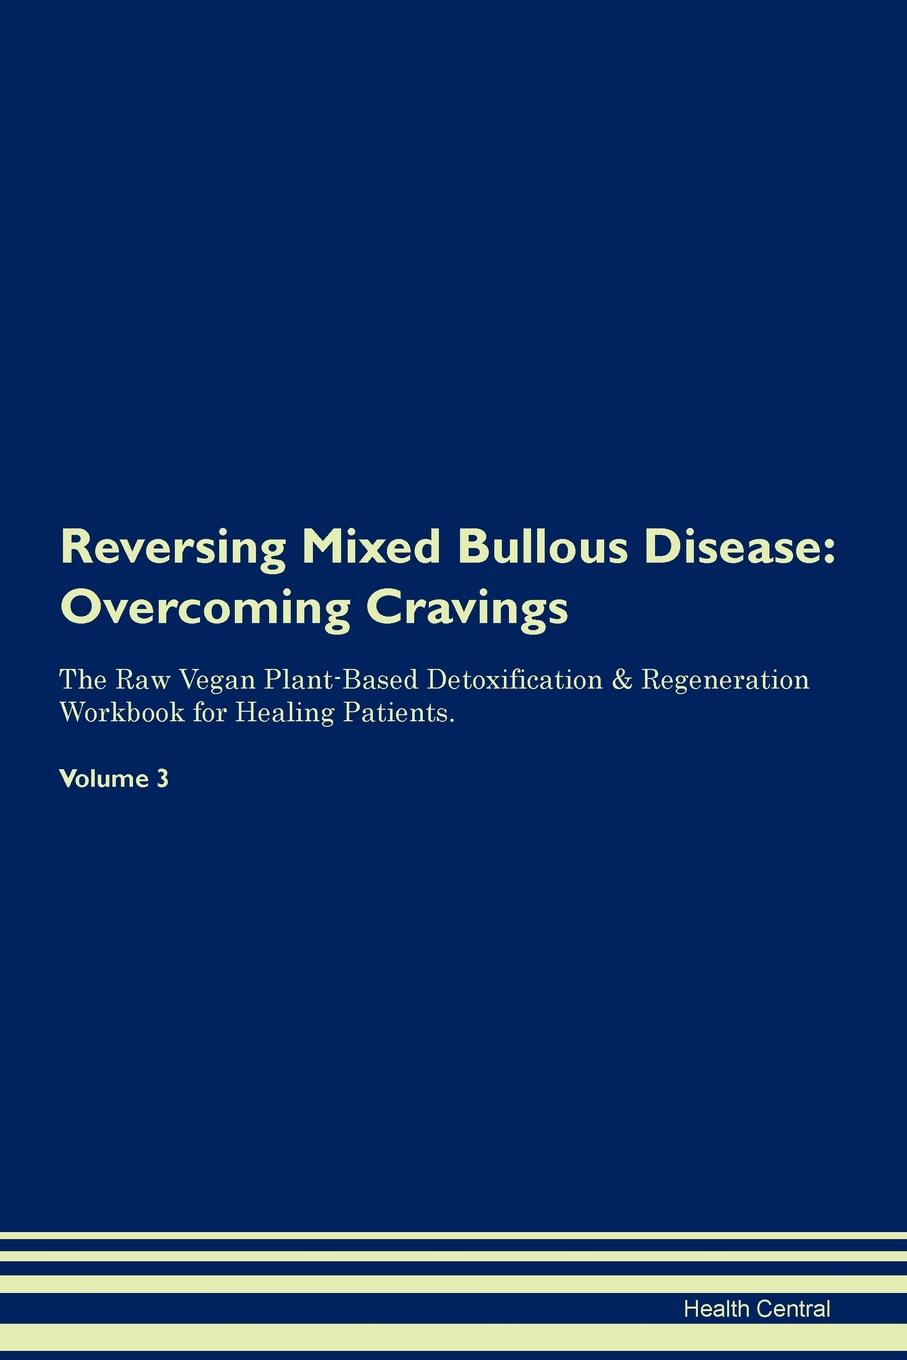 Фото - Health Central Reversing Mixed Bullous Disease. Overcoming Cravings The Raw Vegan Plant-Based Detoxification & Regeneration Workbook for Healing Patients. Volume 3 health central reversing extramammary paget s disease overcoming cravings the raw vegan plant based detoxification regeneration workbook for healing patients volume 3